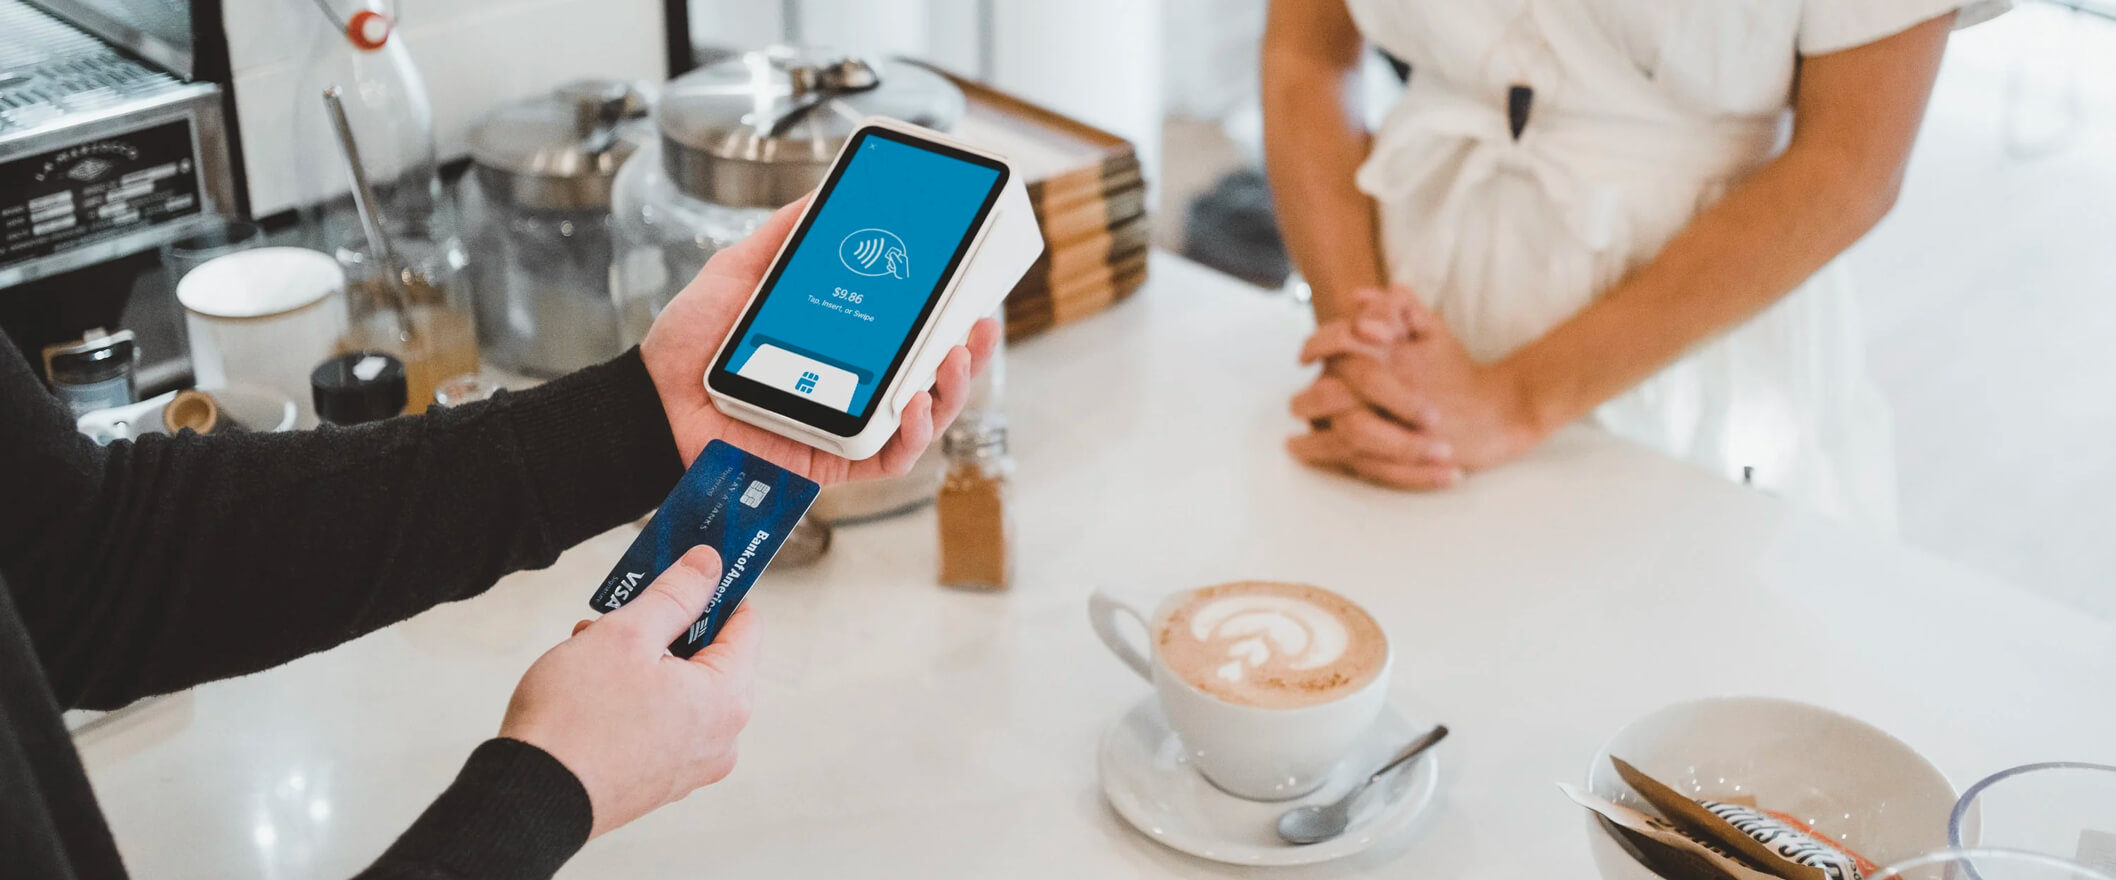 a consumer using a credit card to check out at a coffee shop